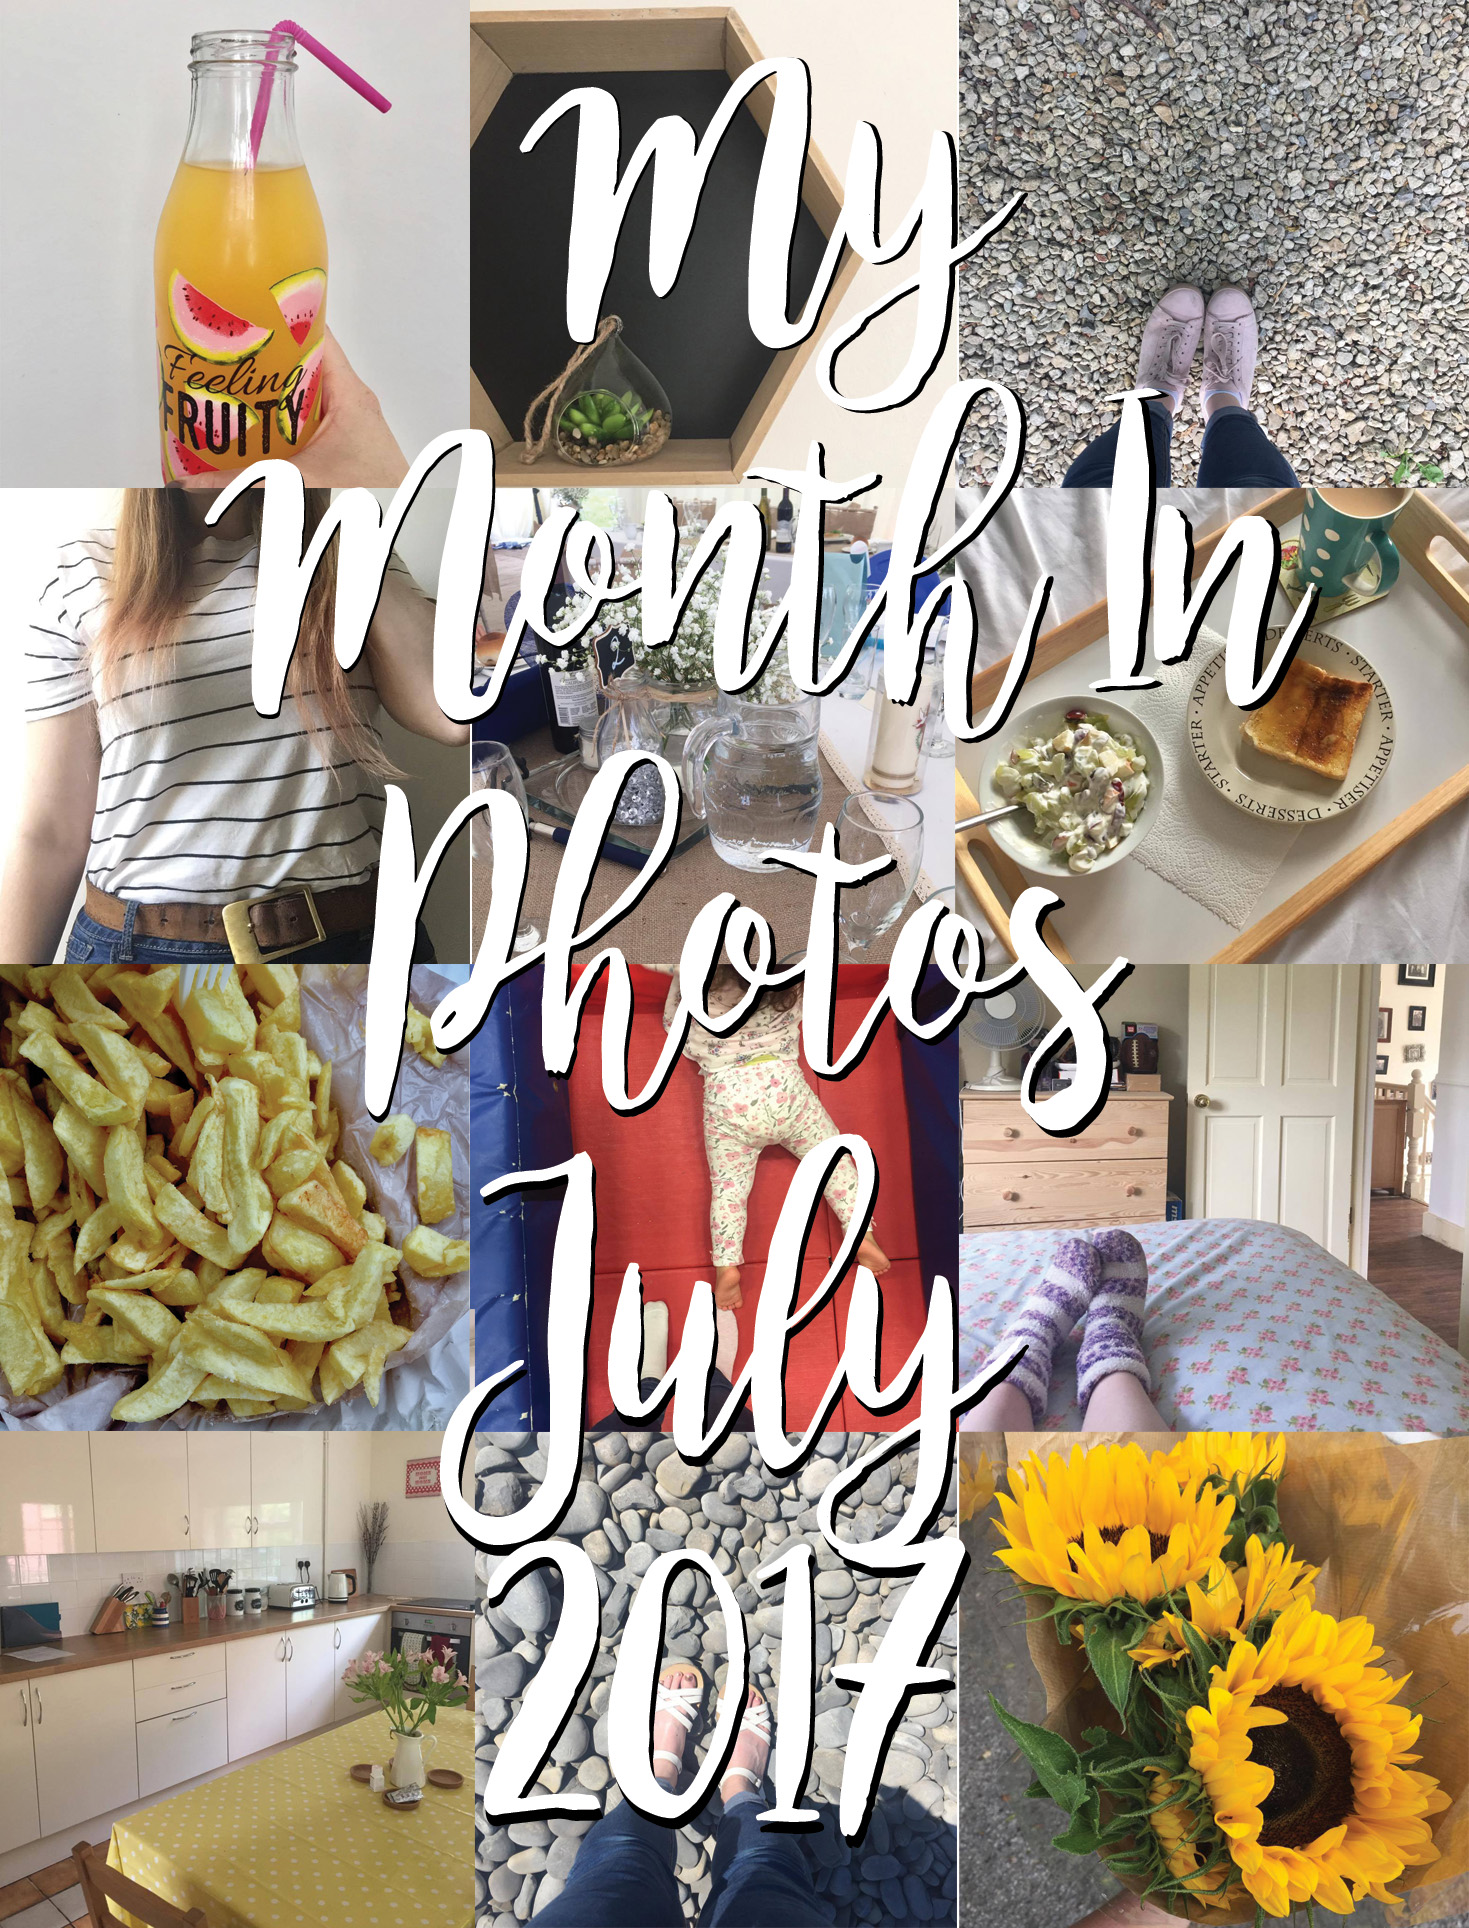 My month in photos - July 2017